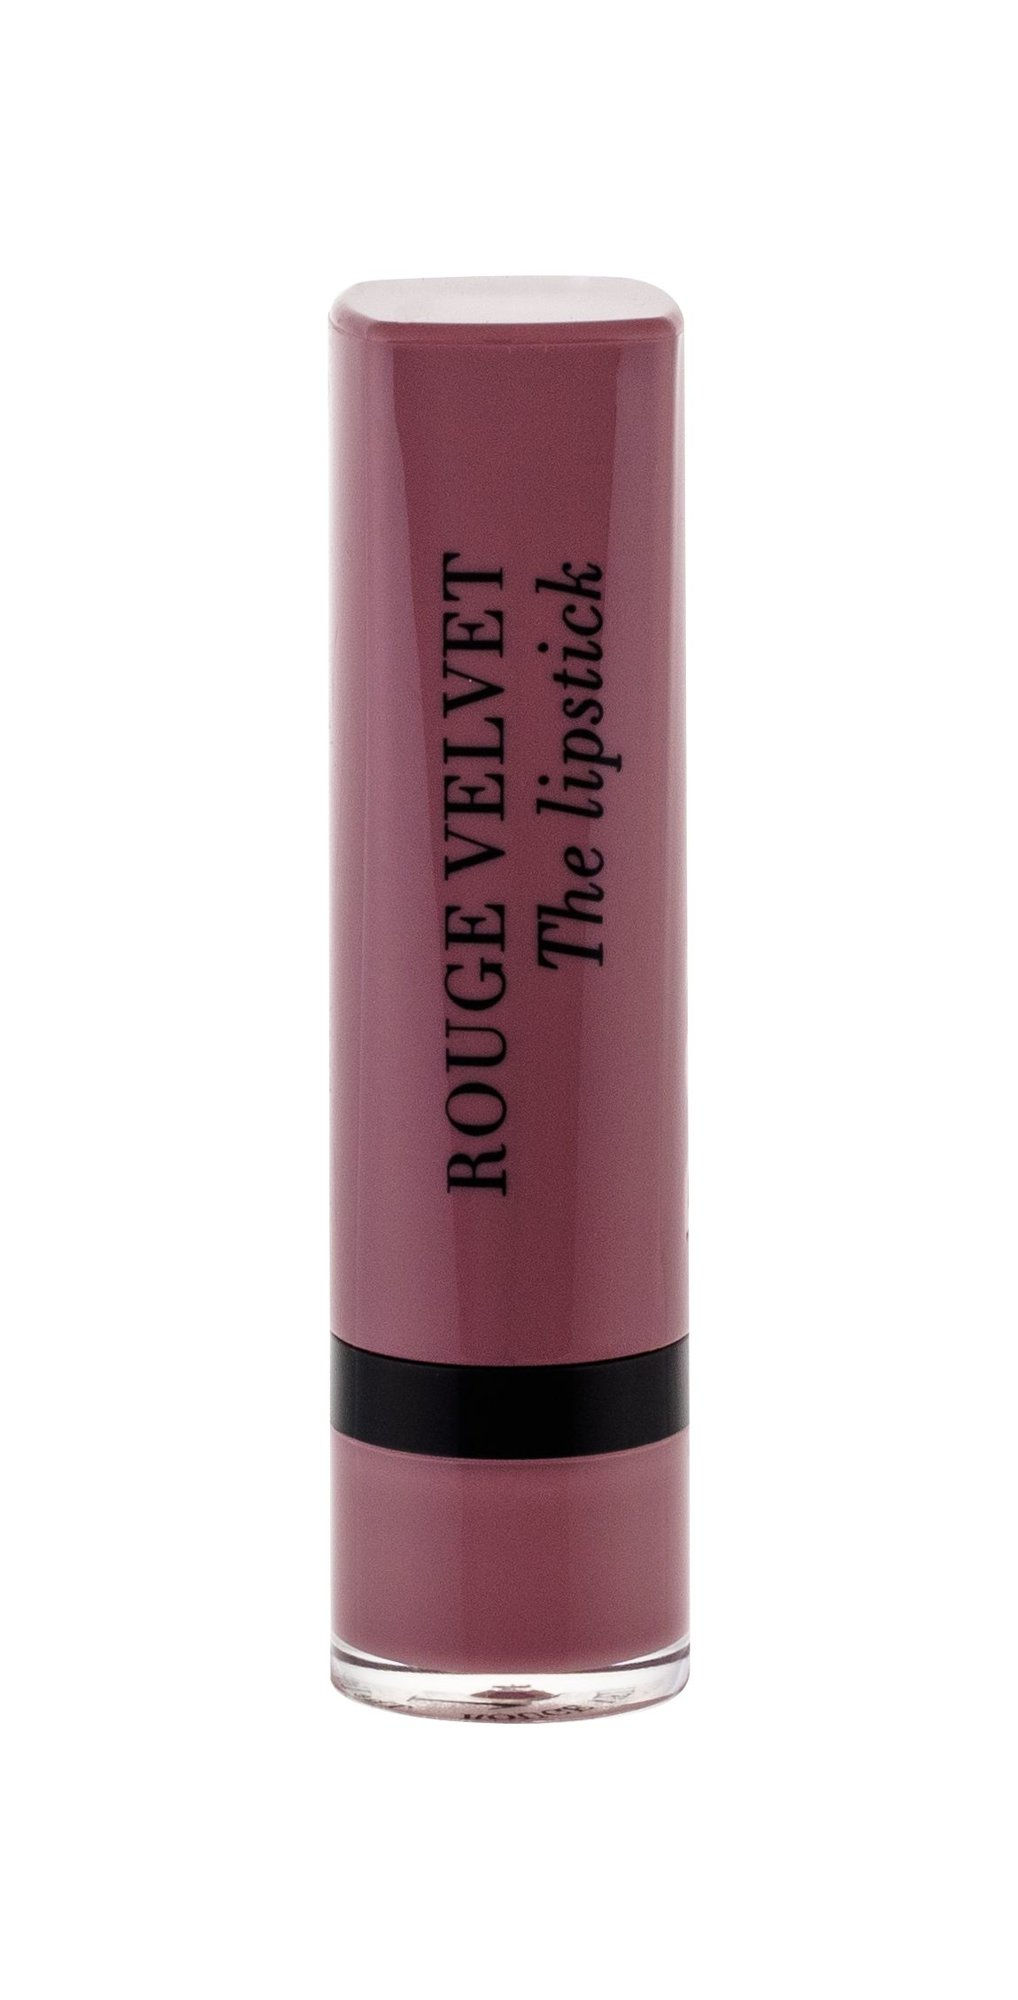 BOURJOIS Paris Rouge Velvet Lipstick 2,4ml 17 From Paris With Mauve